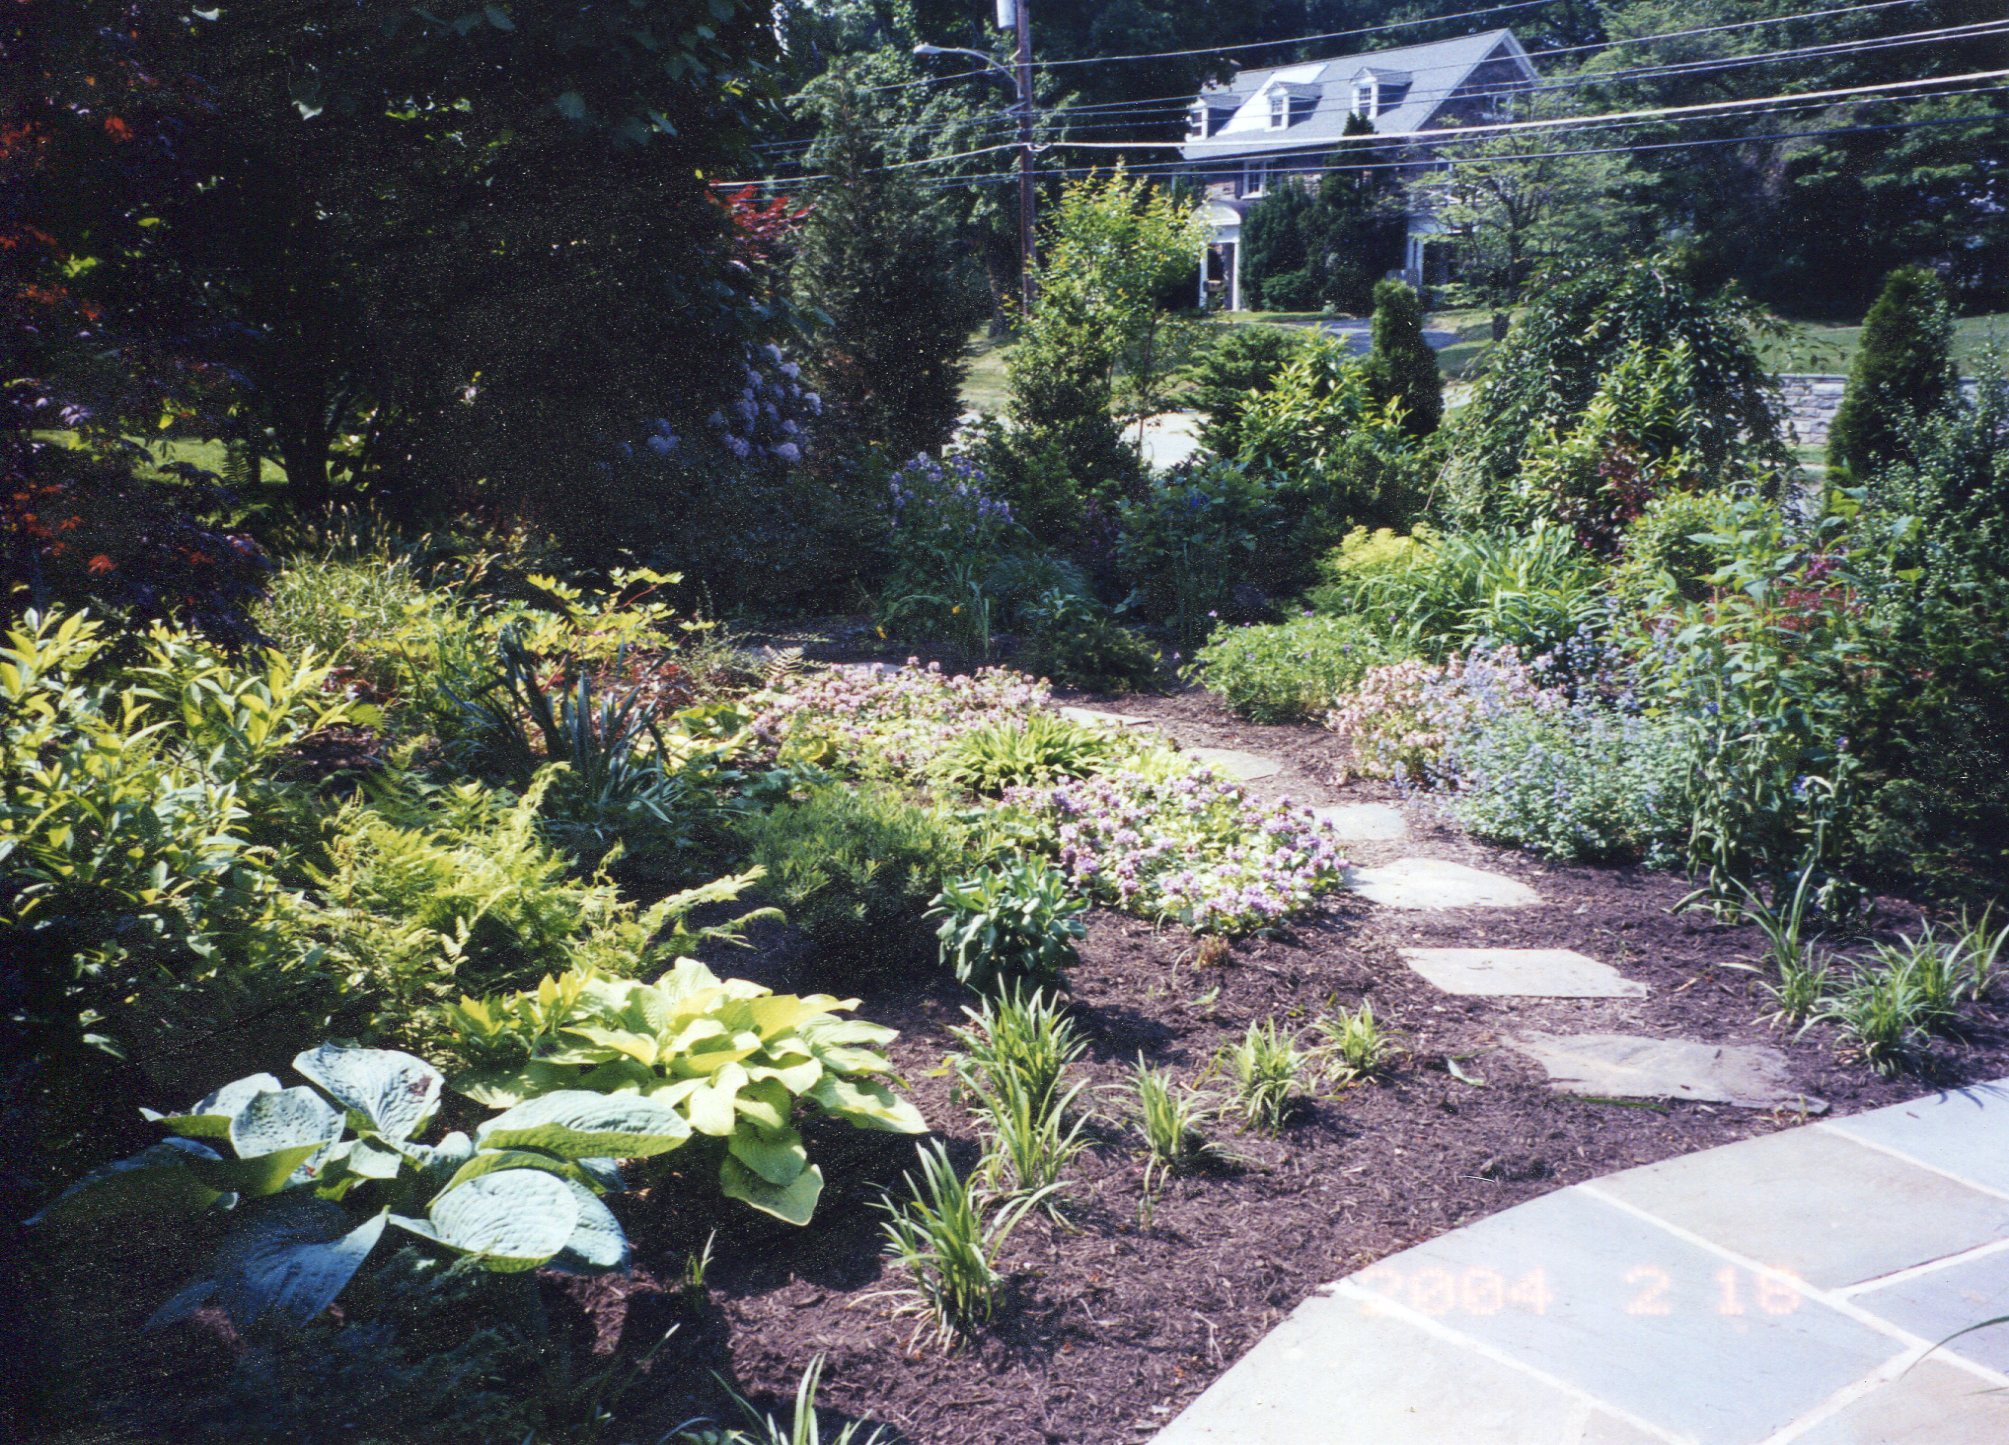 Landscaping Property Lines Pictures : Ferdian beuh ideas for landscaping property lines